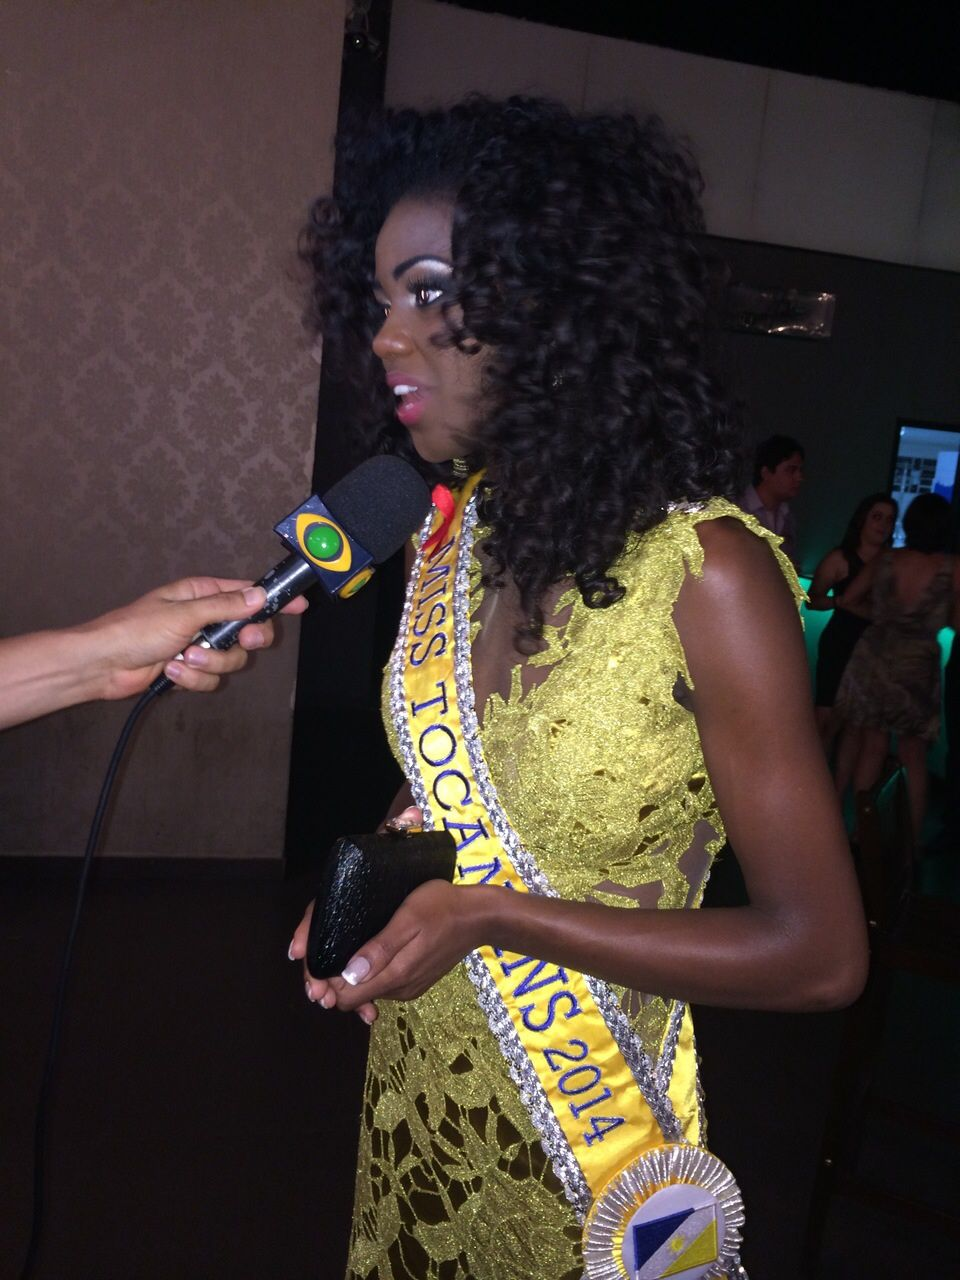 wizelany marques, miss tocantins 2014. Sysfl8of